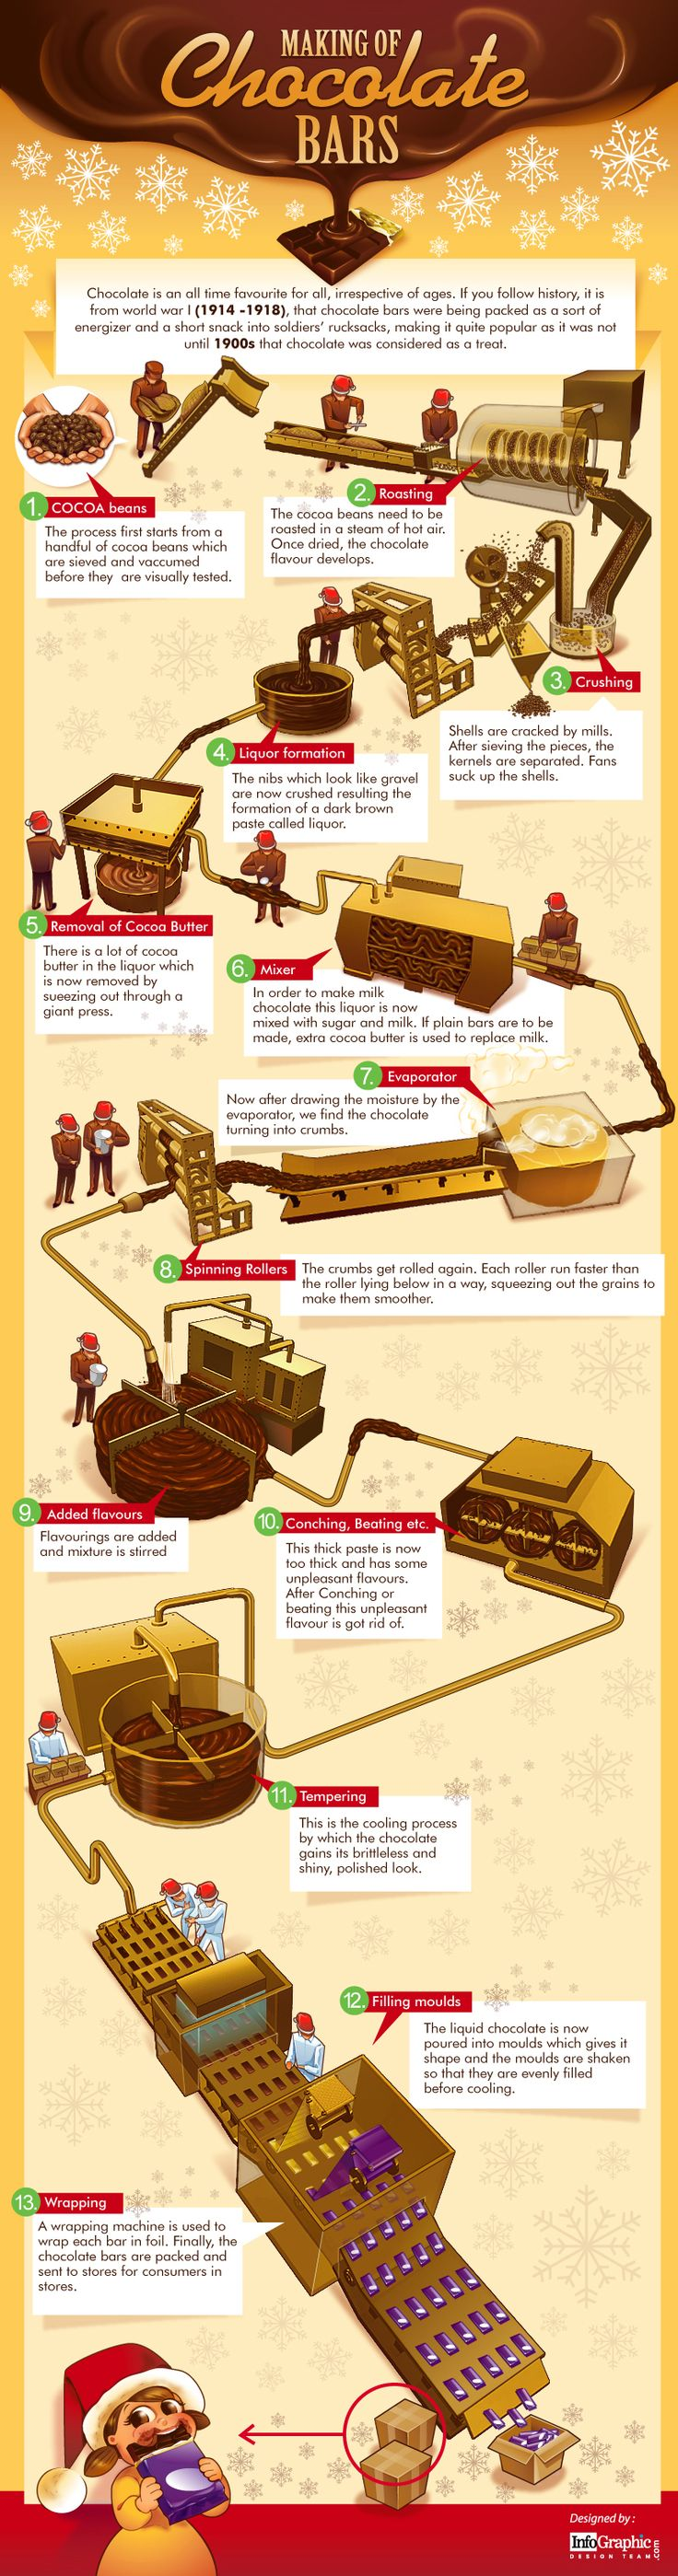 Making of Chocolate Bars